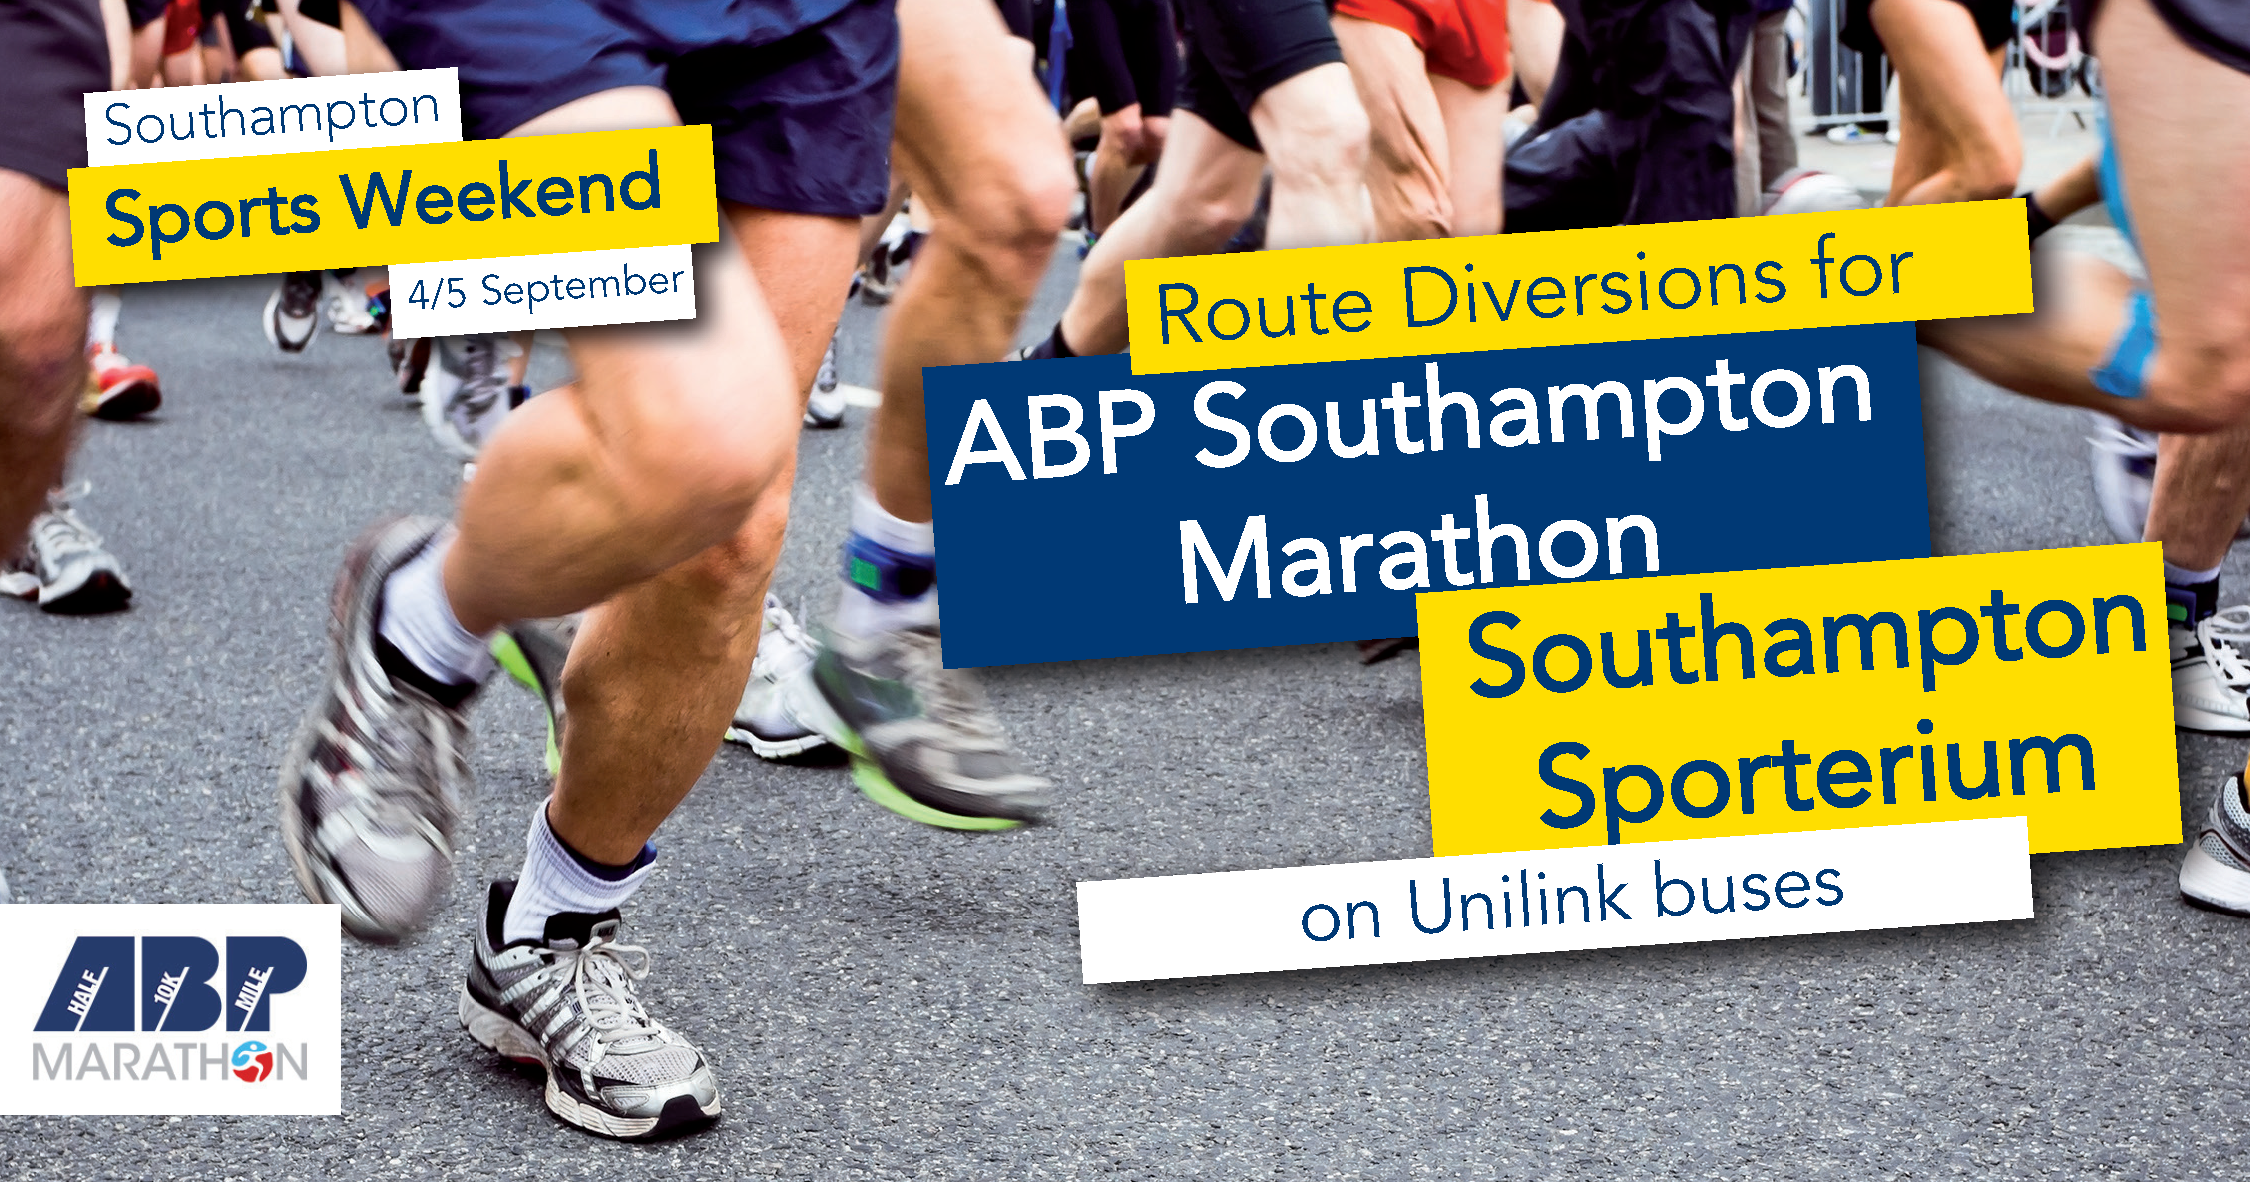 southampton sports weekend 4/5 september route diversions on unilink buses